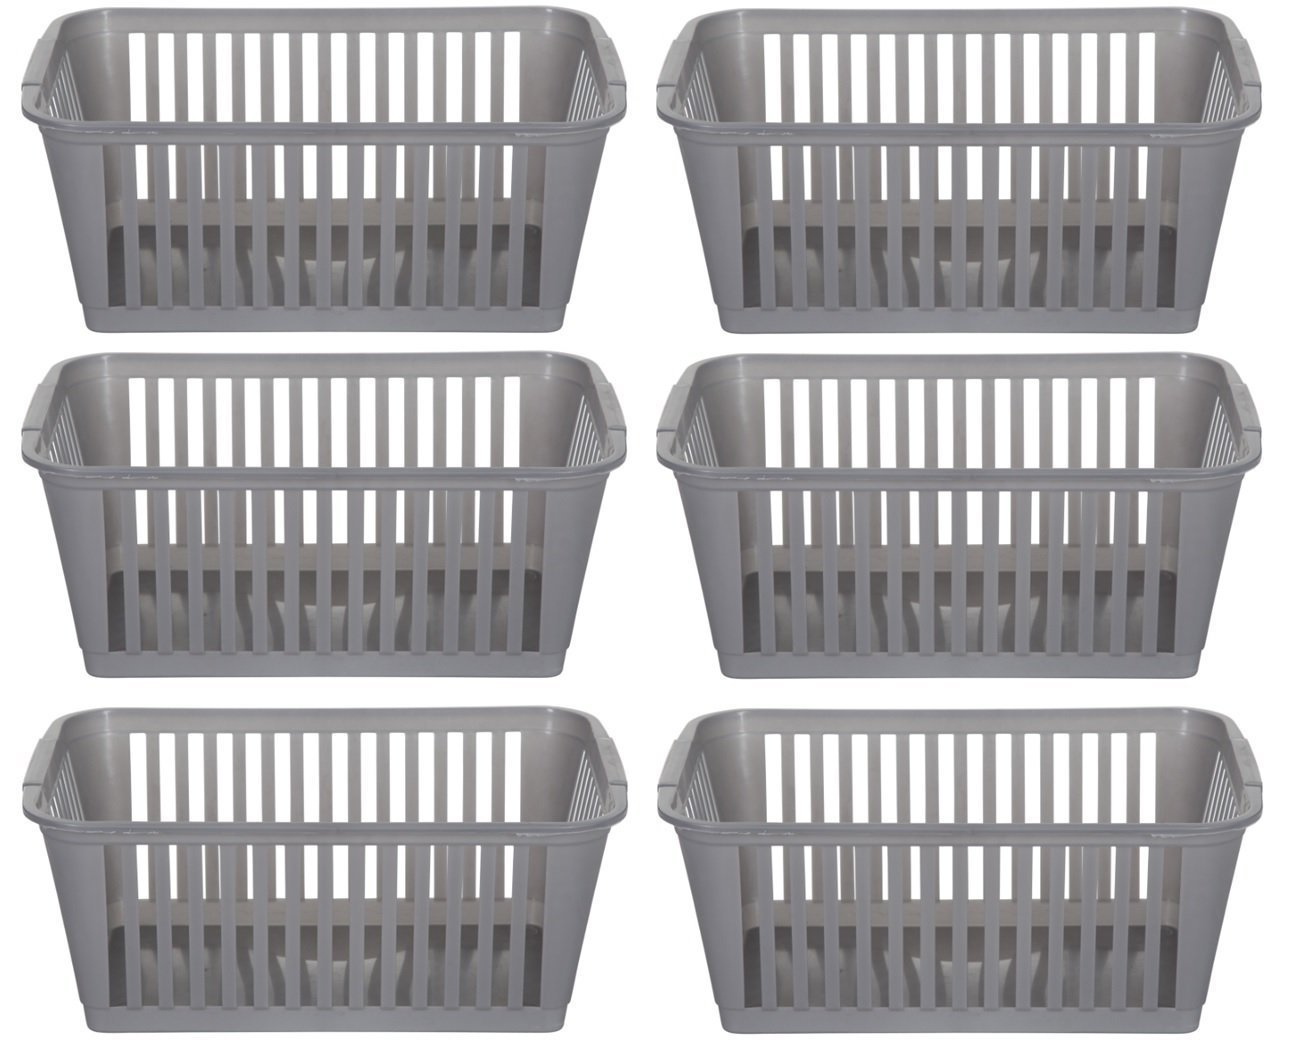 25cm Silver Plastic Handy Basket Storage Basket - Set Of 6 R & S Supplies Ltd